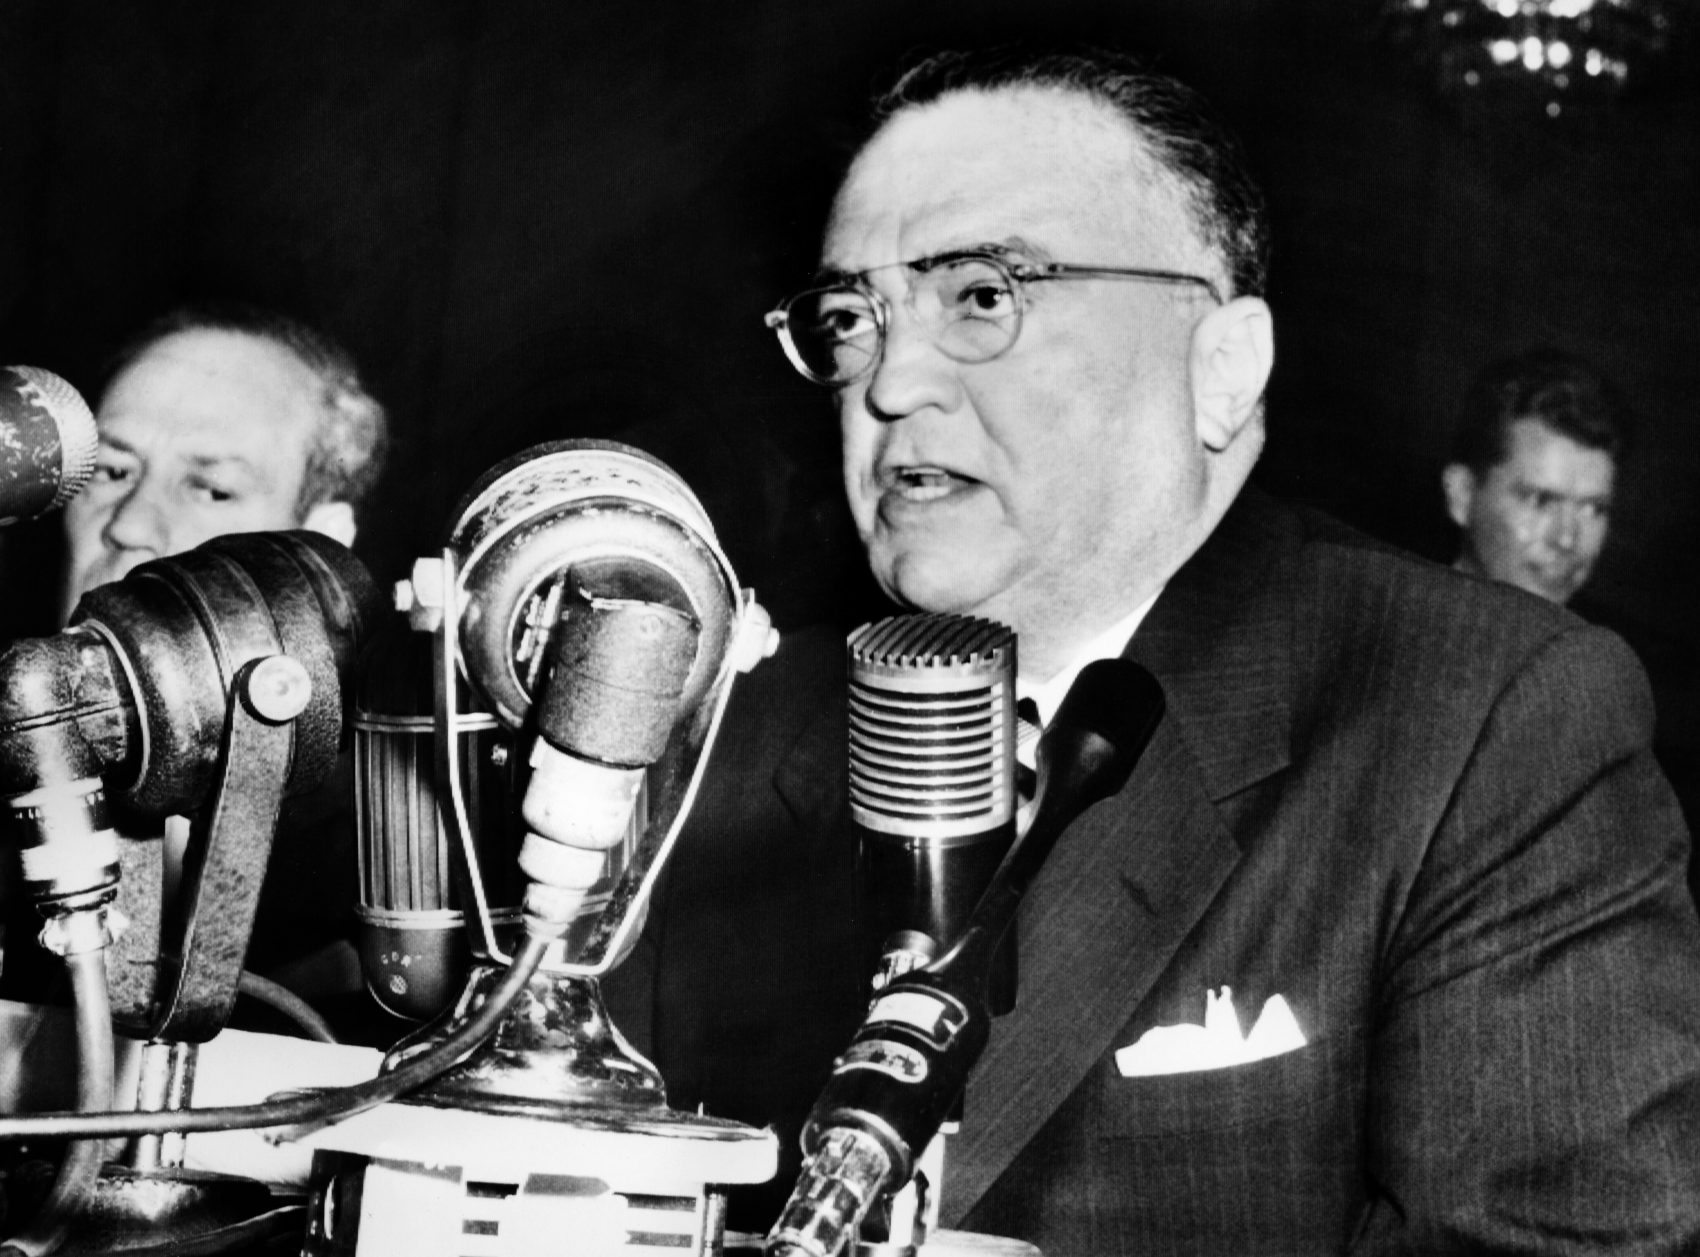 J. Edgar Hoover, director of the Federal Bureau of Investigation, gives a speech during testimony before a Senate committee in 1953 in Washington, D.C. (Bob Mulligan/AFP/Getty Images)